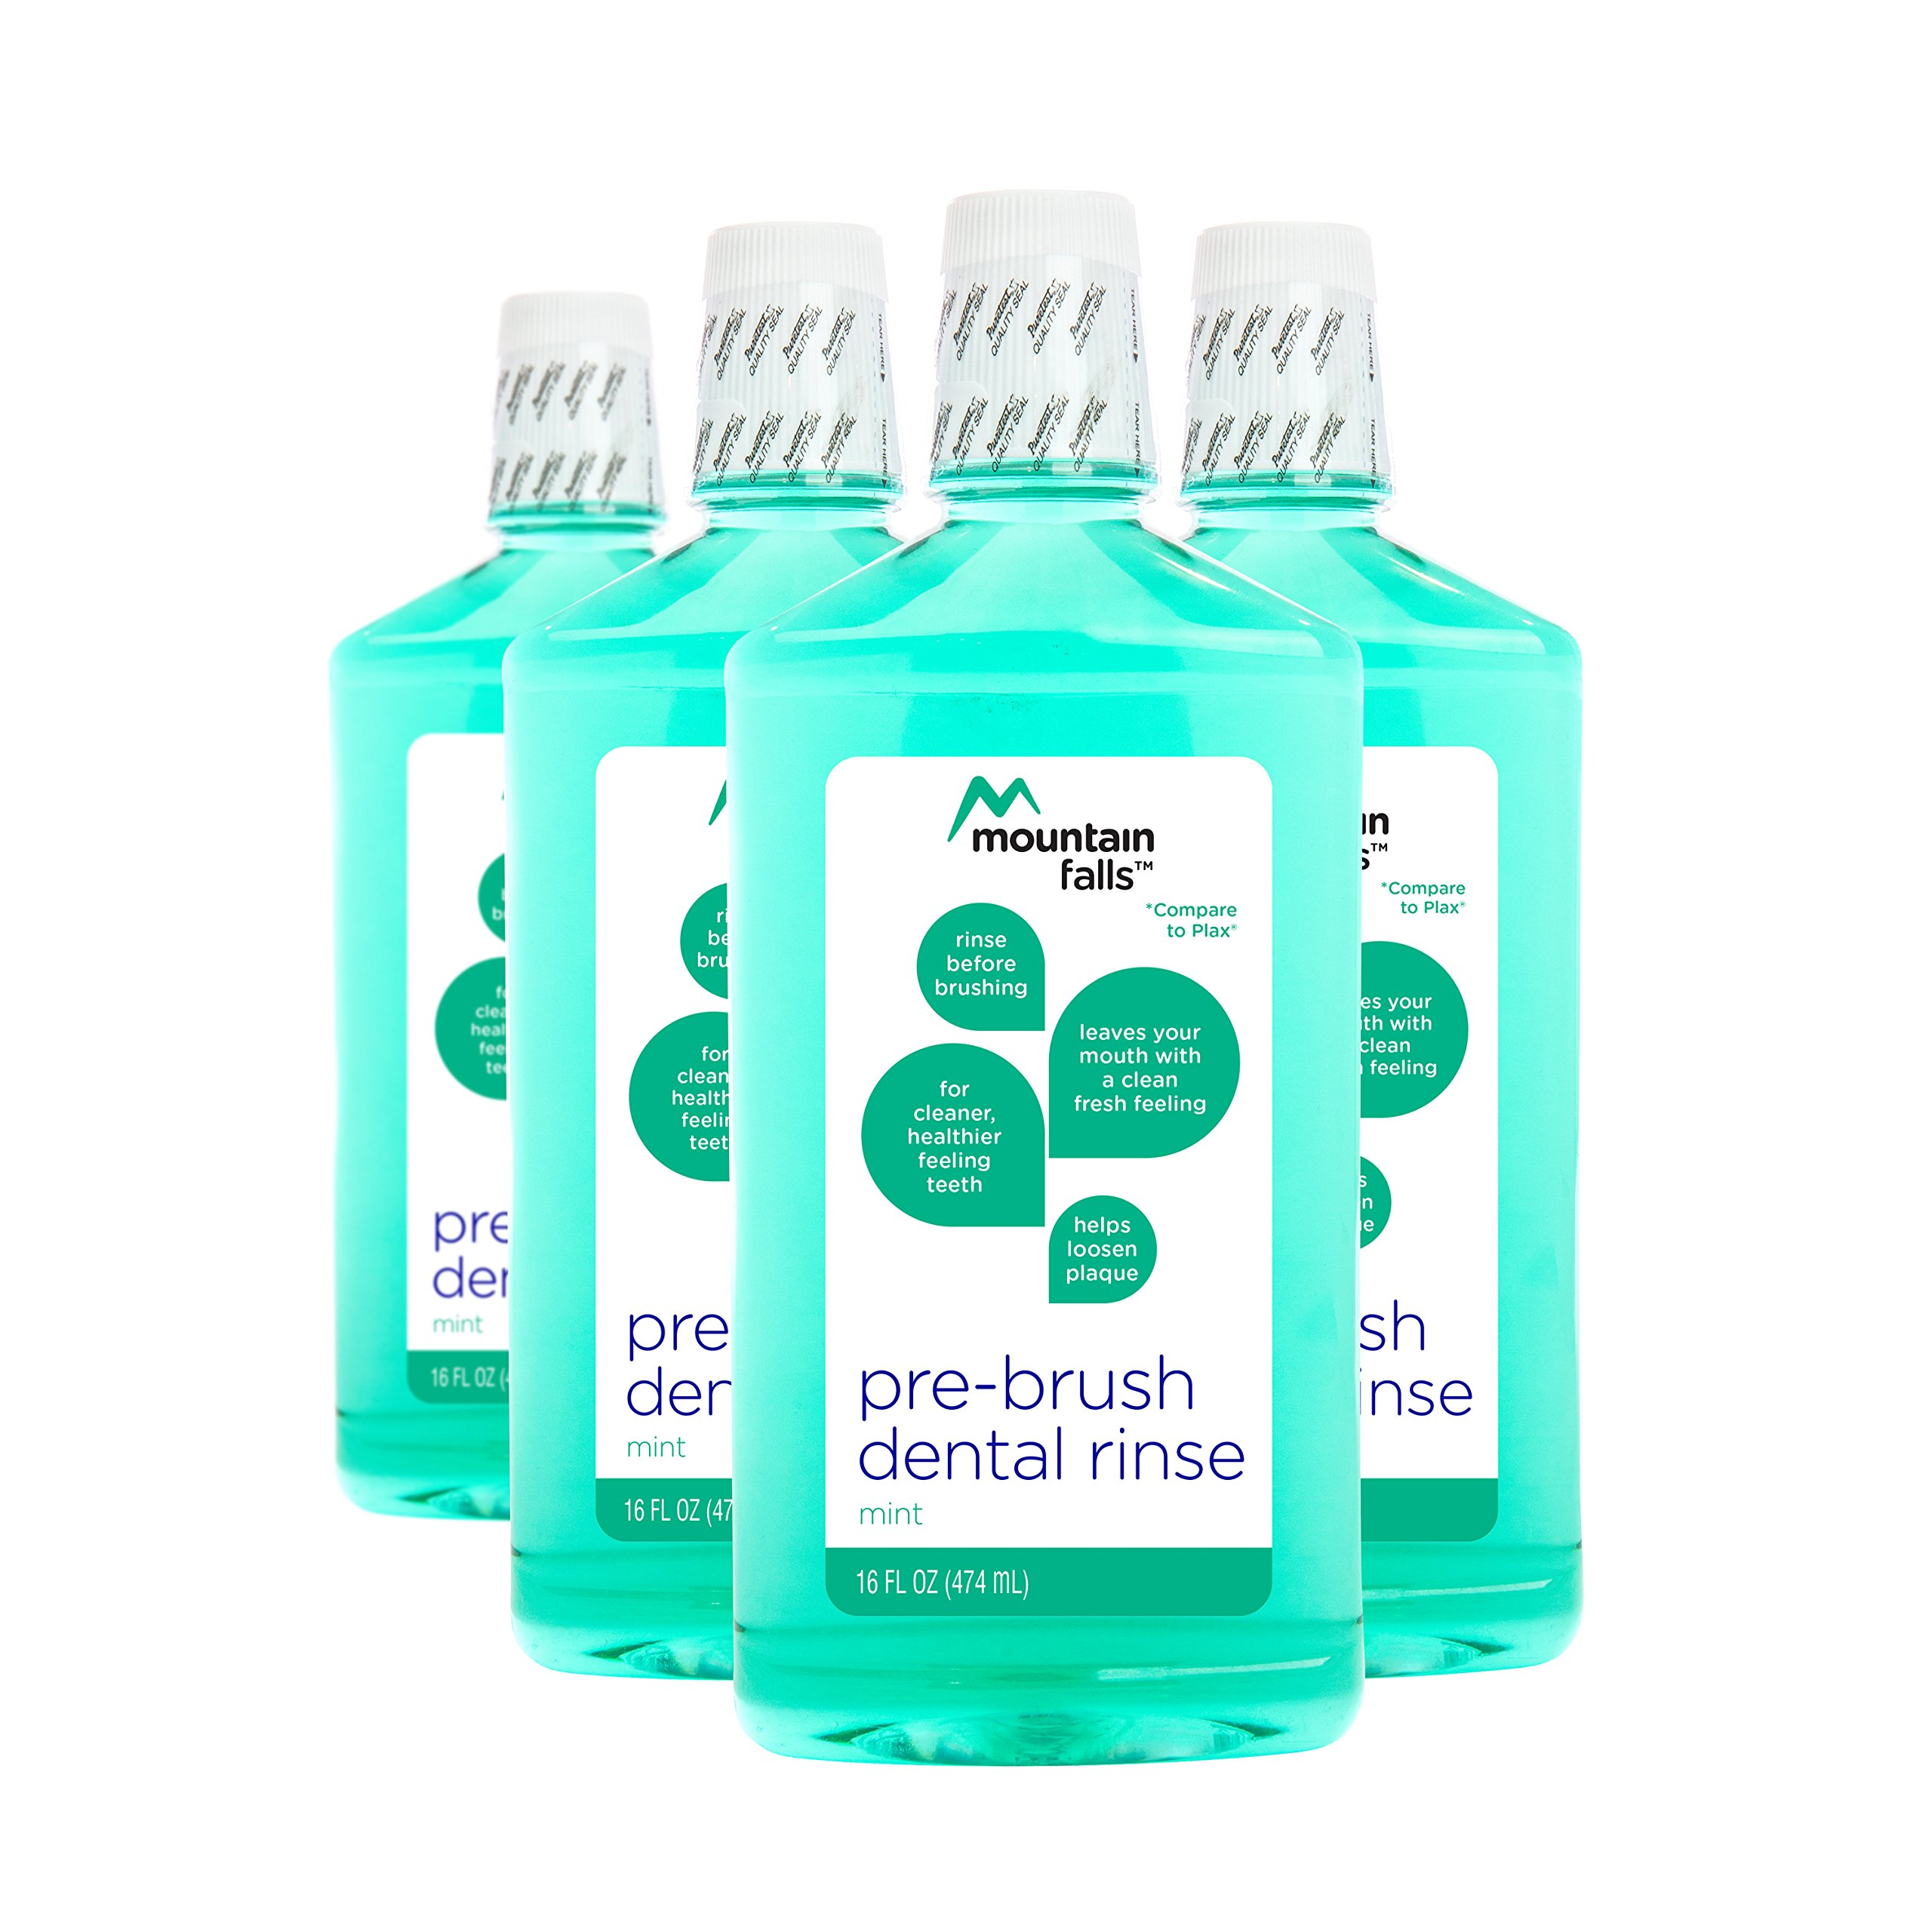 Mountain Falls Pre-Brush Dental Rinse, Mint, Compare to Plax, 16 Fluid Ounce (Pack of 4)